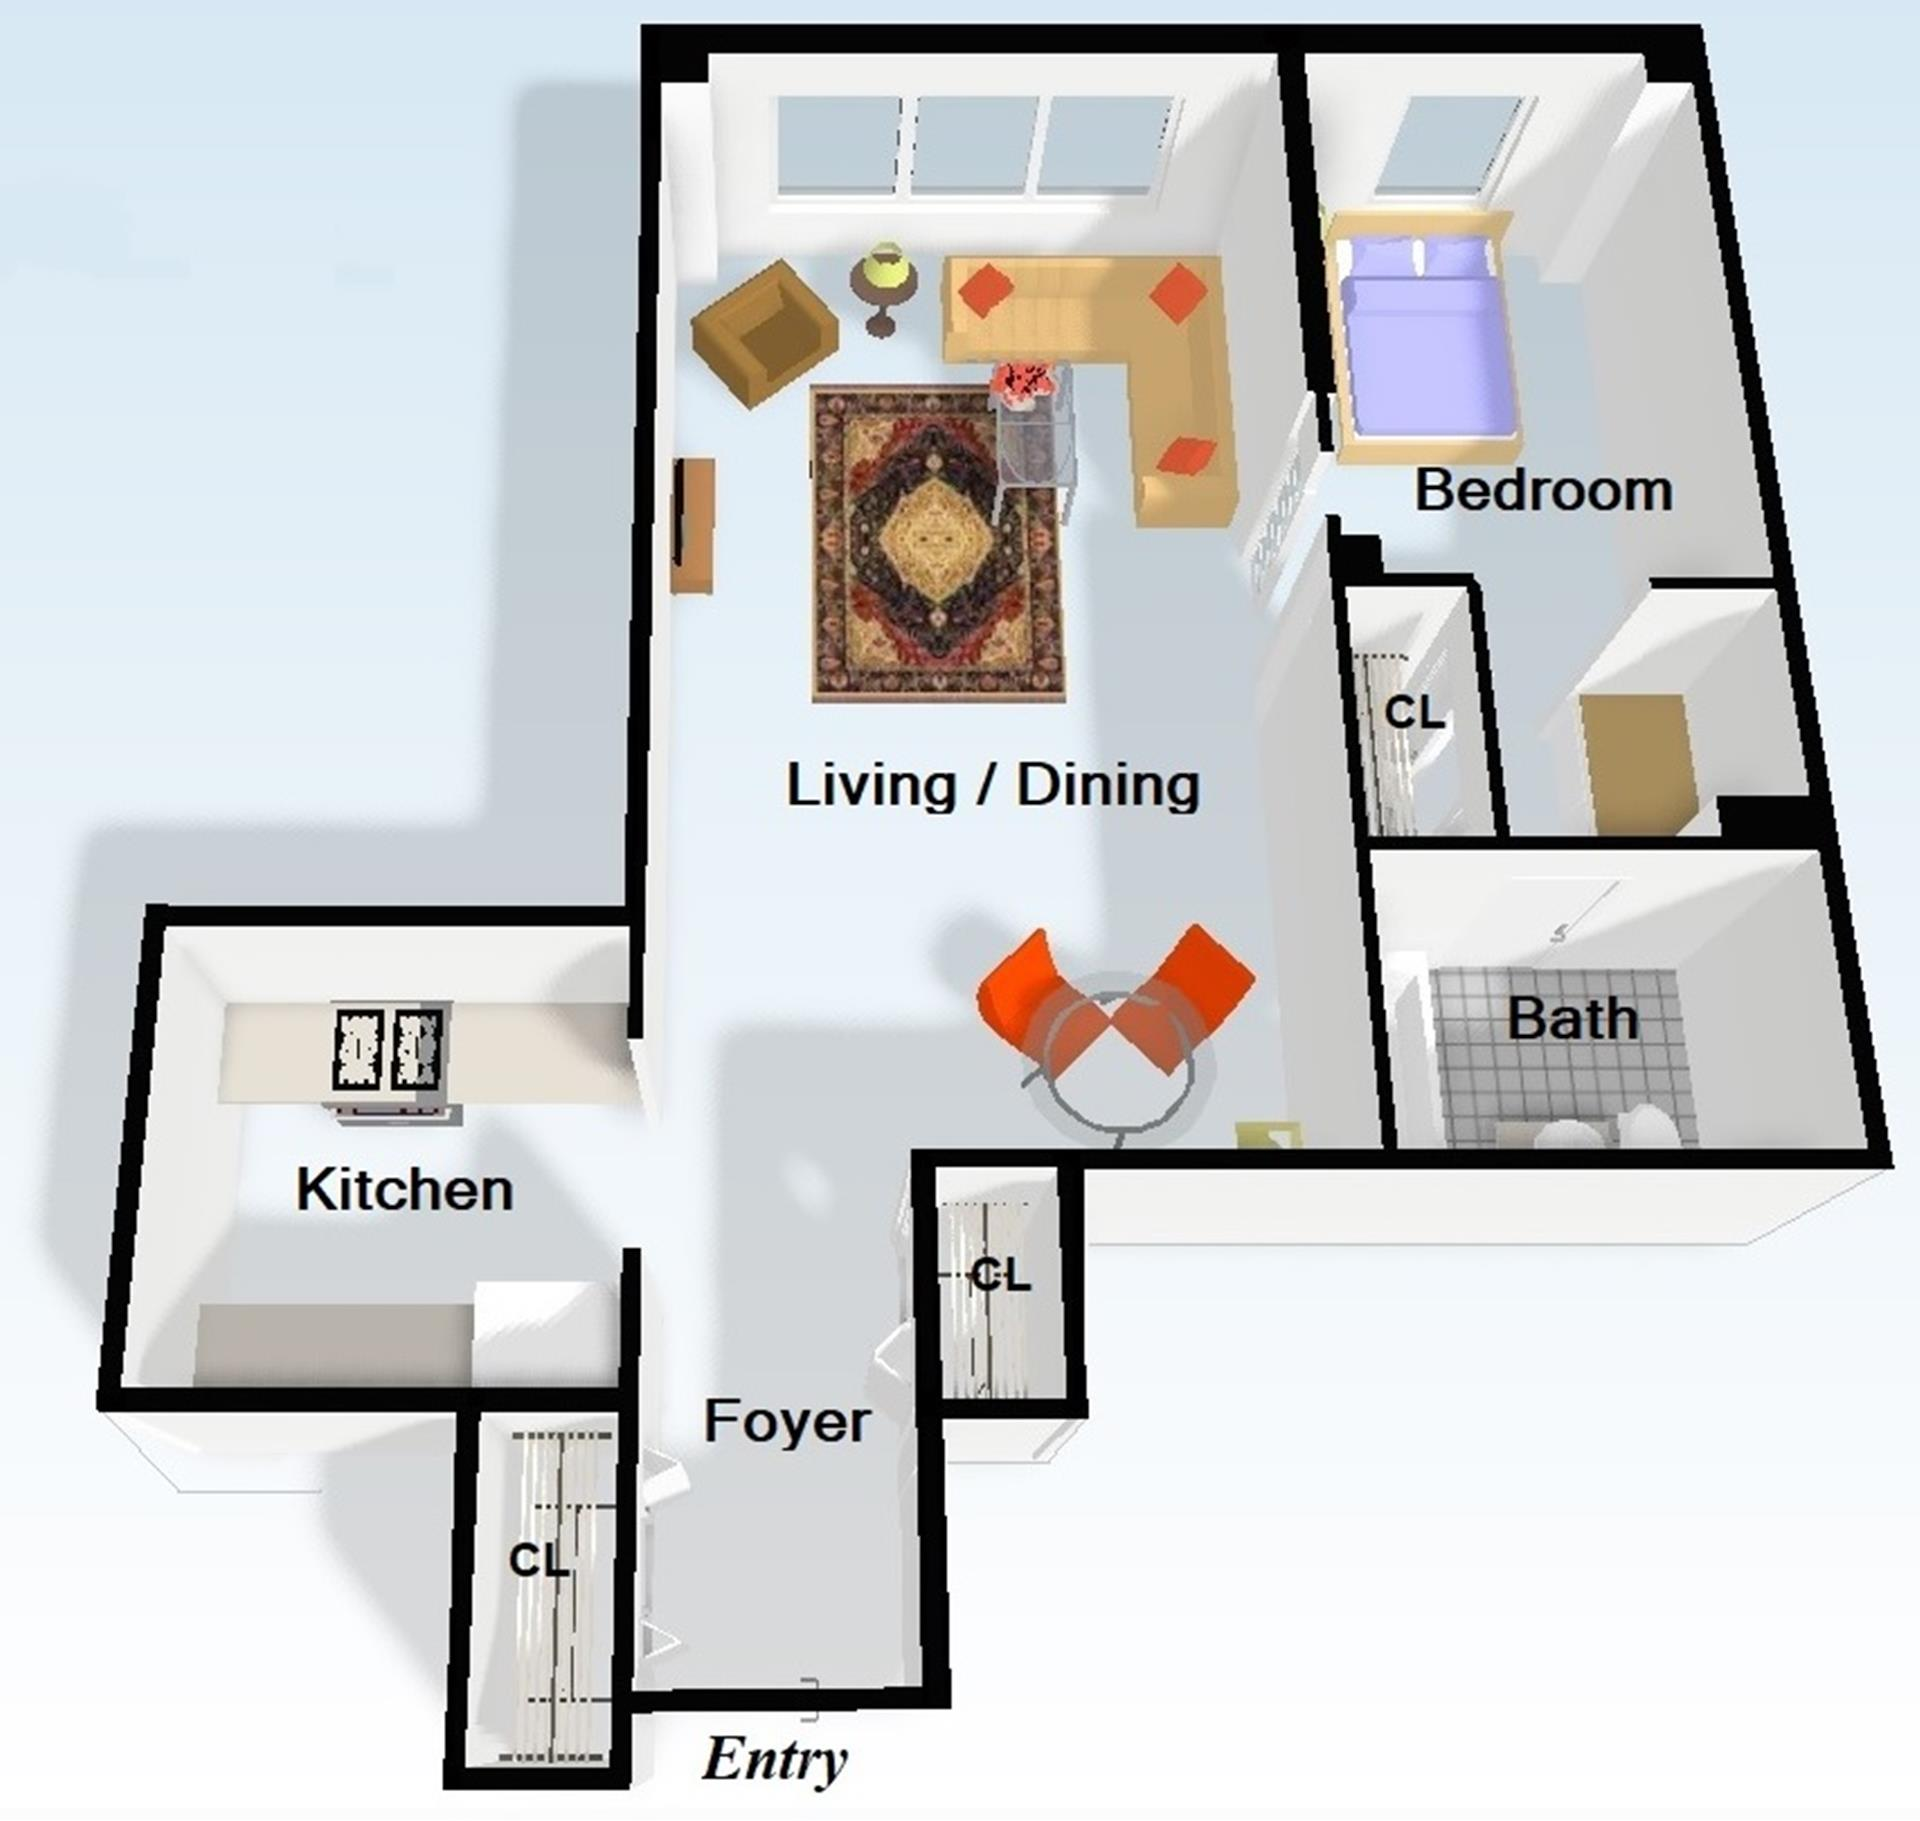 Floor plan of The Caravelle, 445 East 86th St, 16C - Upper East Side, New York